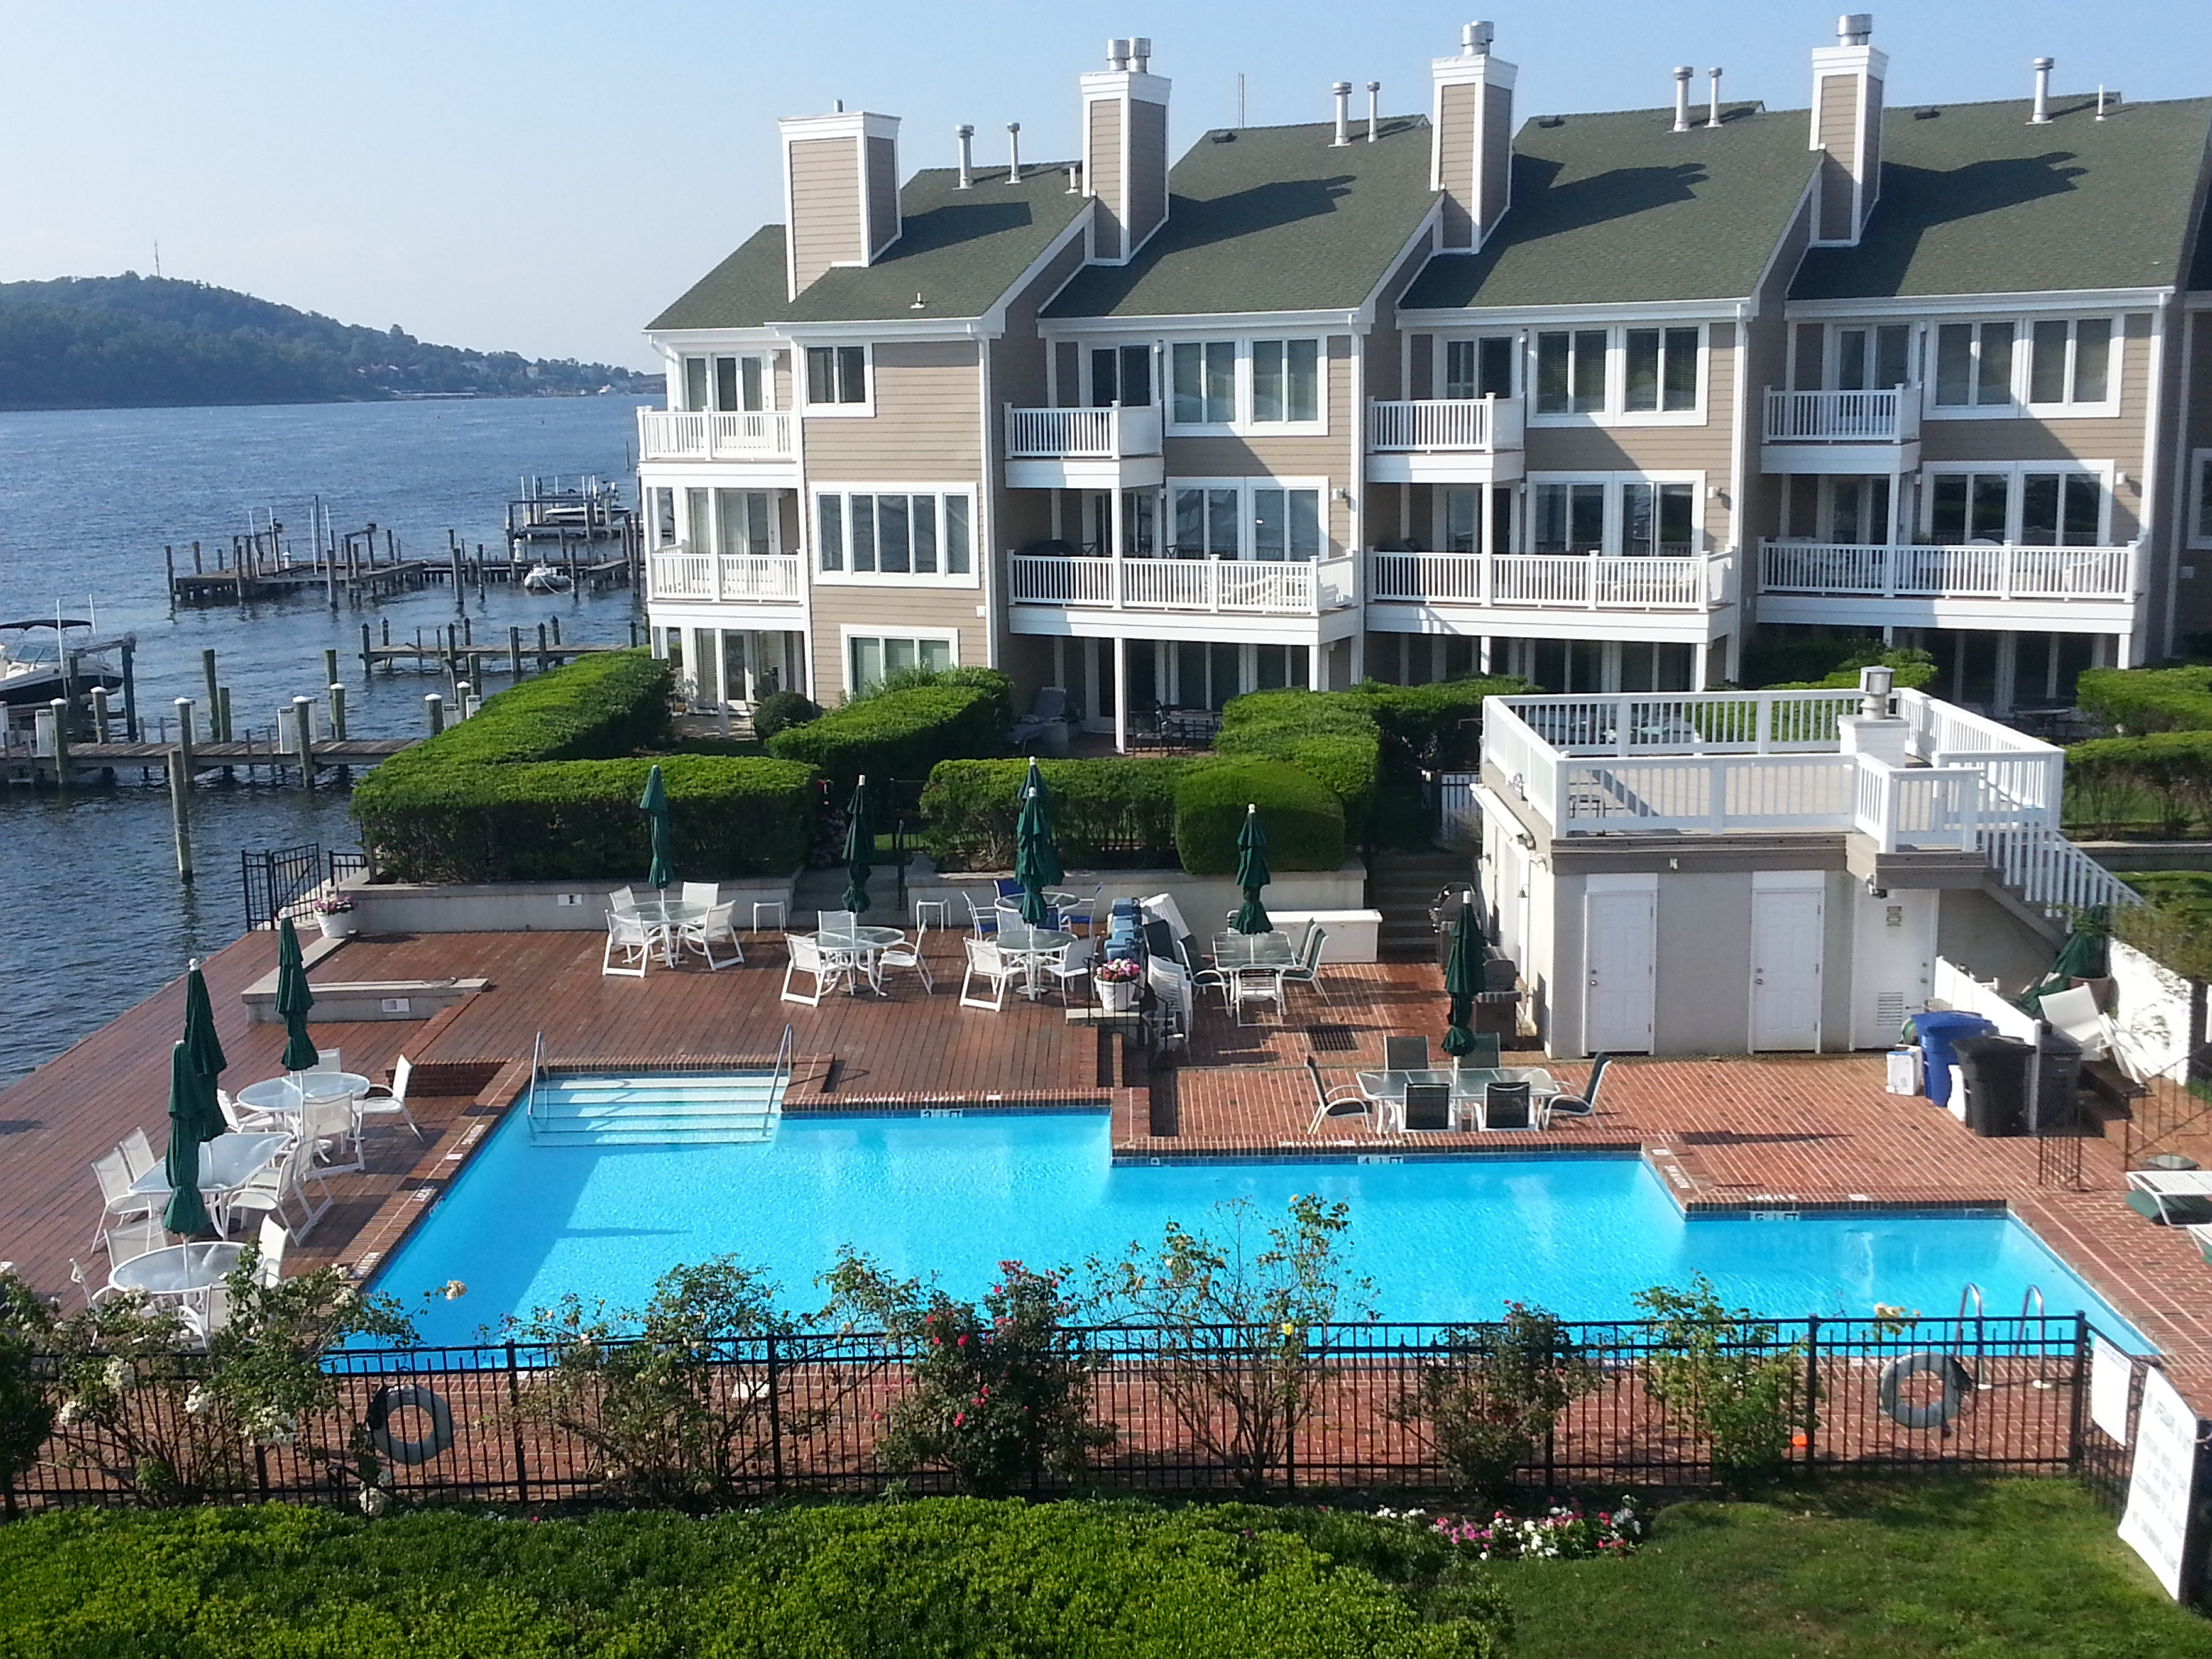 Conveniently located in the center of the complex and overlooking the Shrewsbury River is this pool.